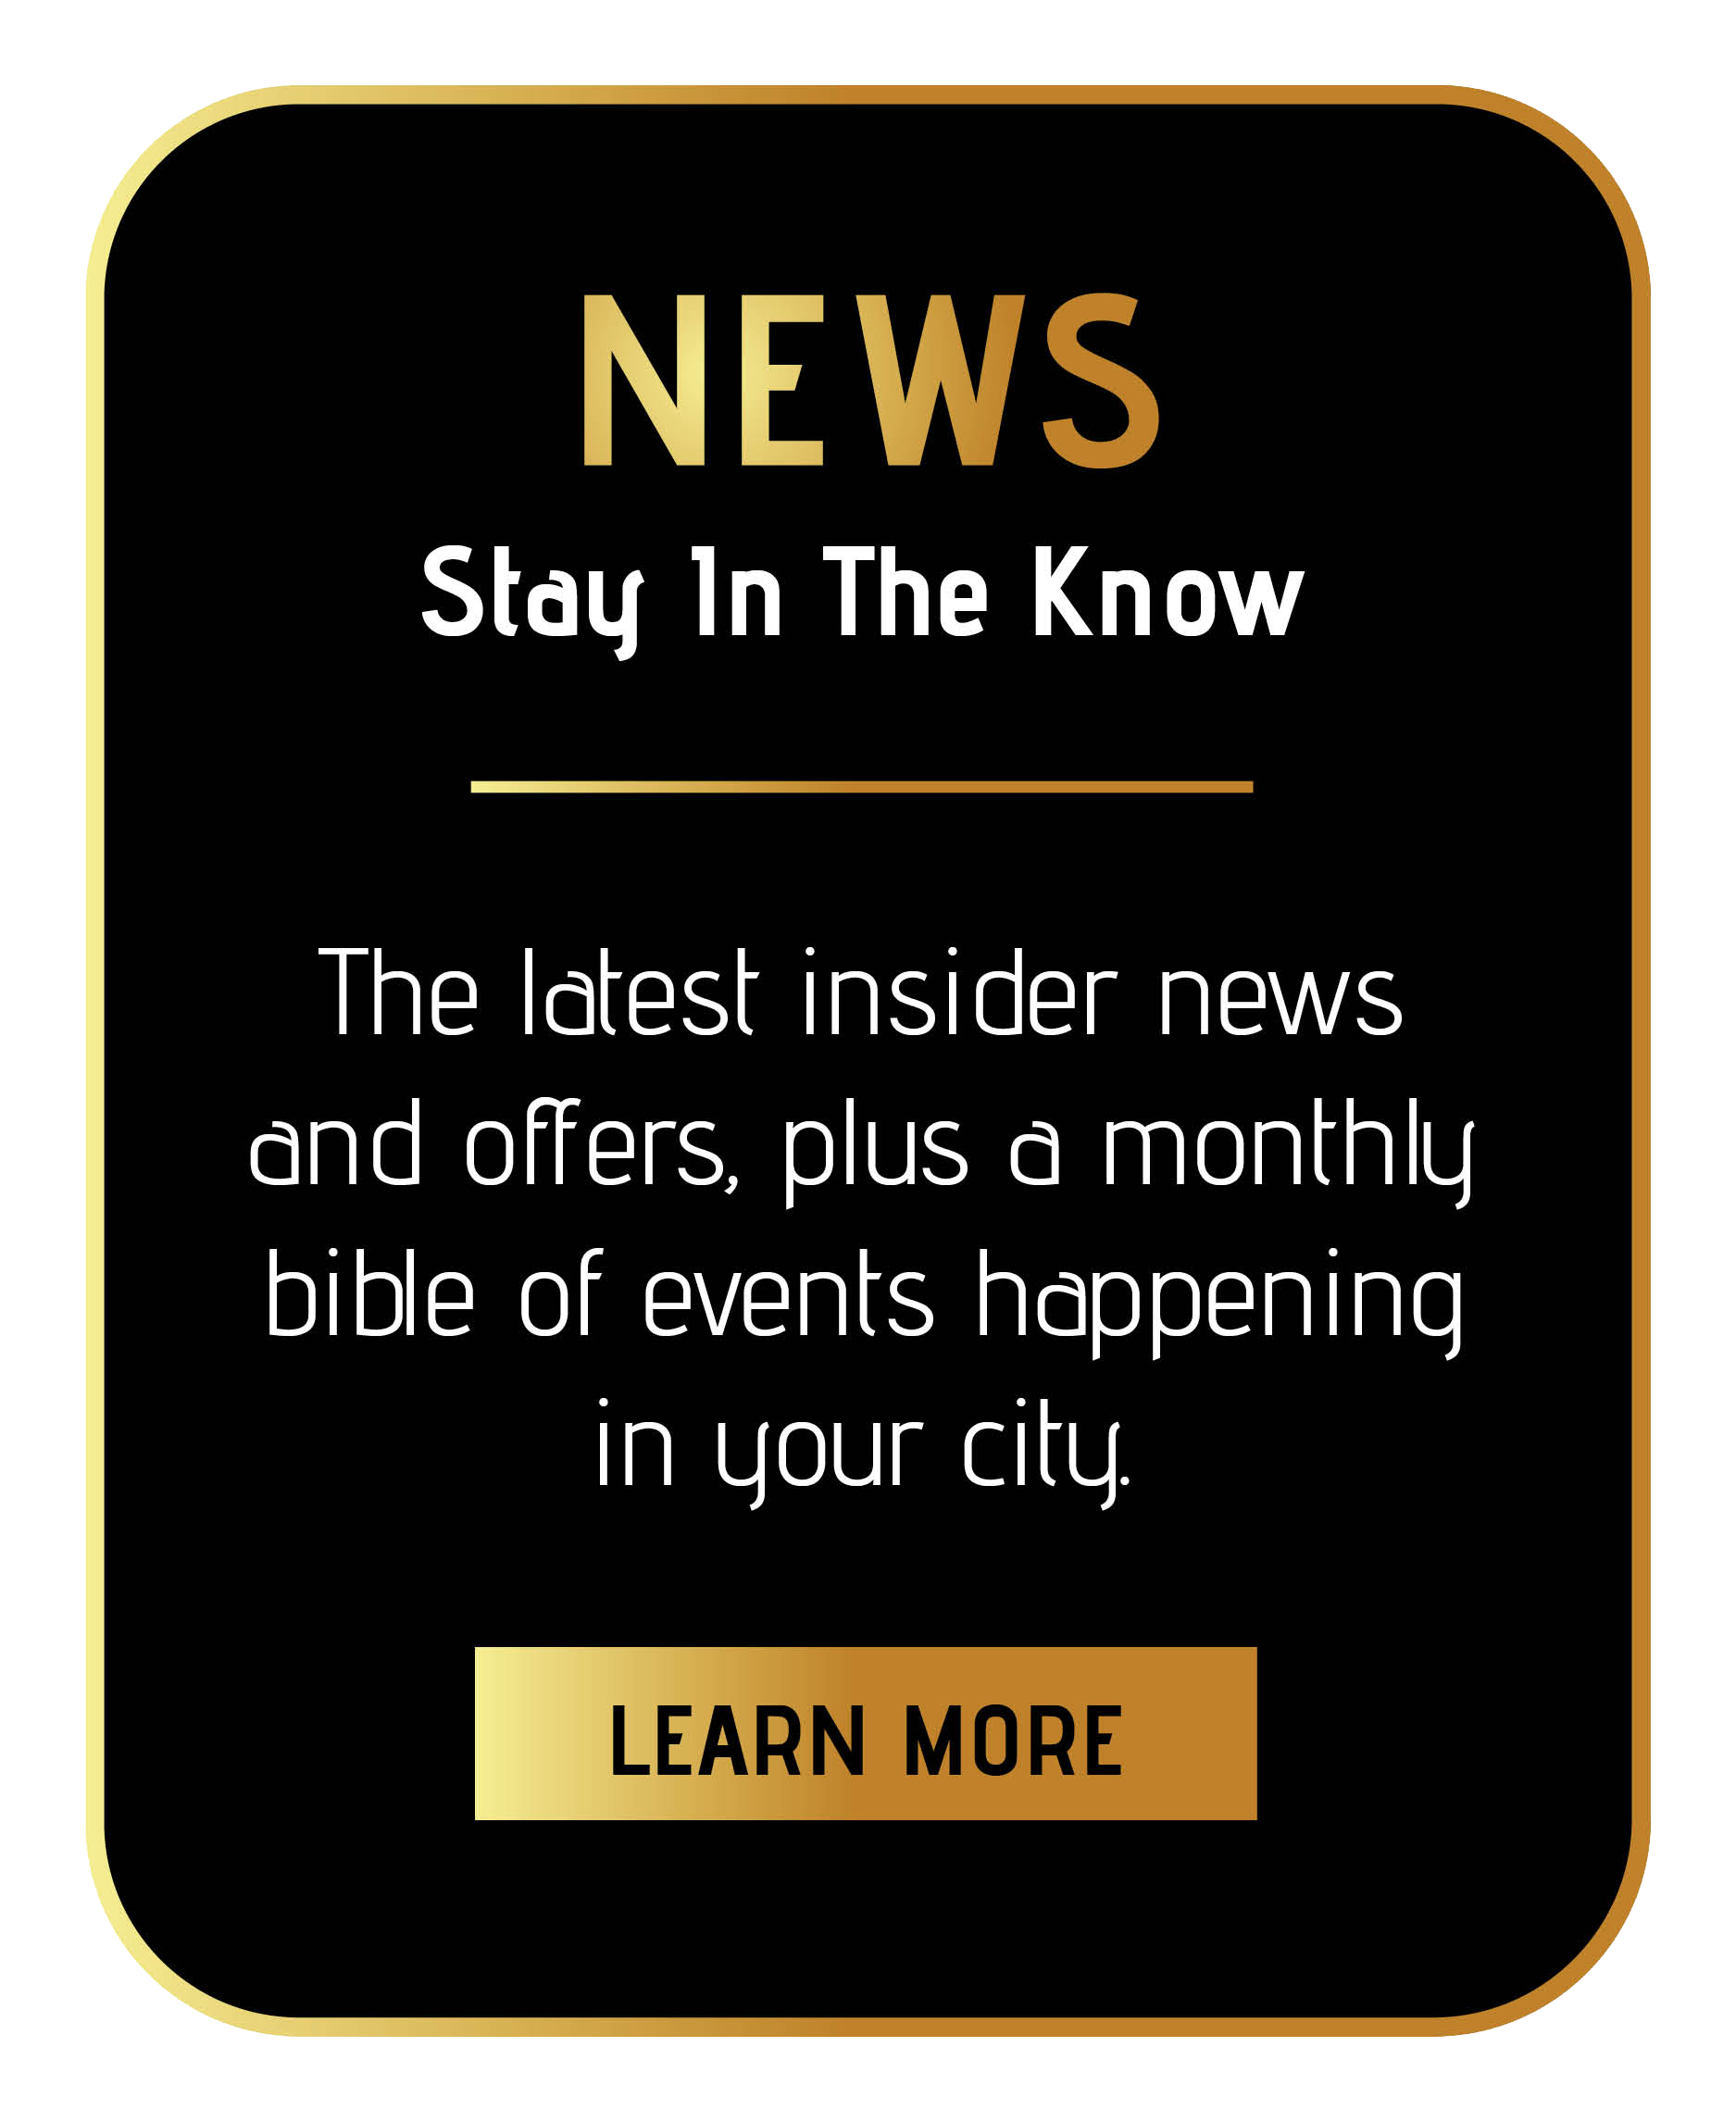 join sincura news membership for the latest news, events and your monthly bible.